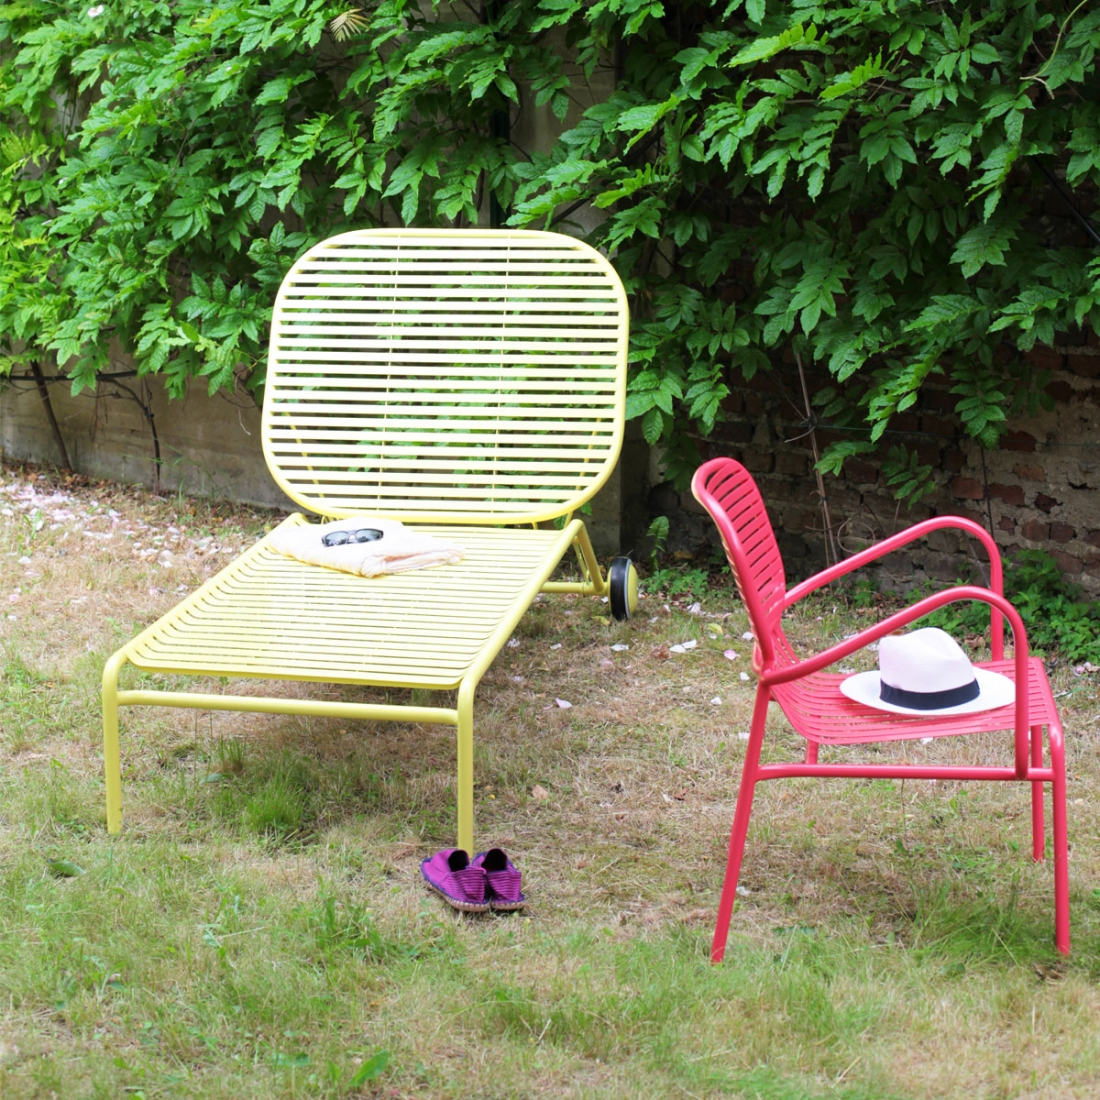 Transat de jardin design week end par oxyo for Transat exterieur design